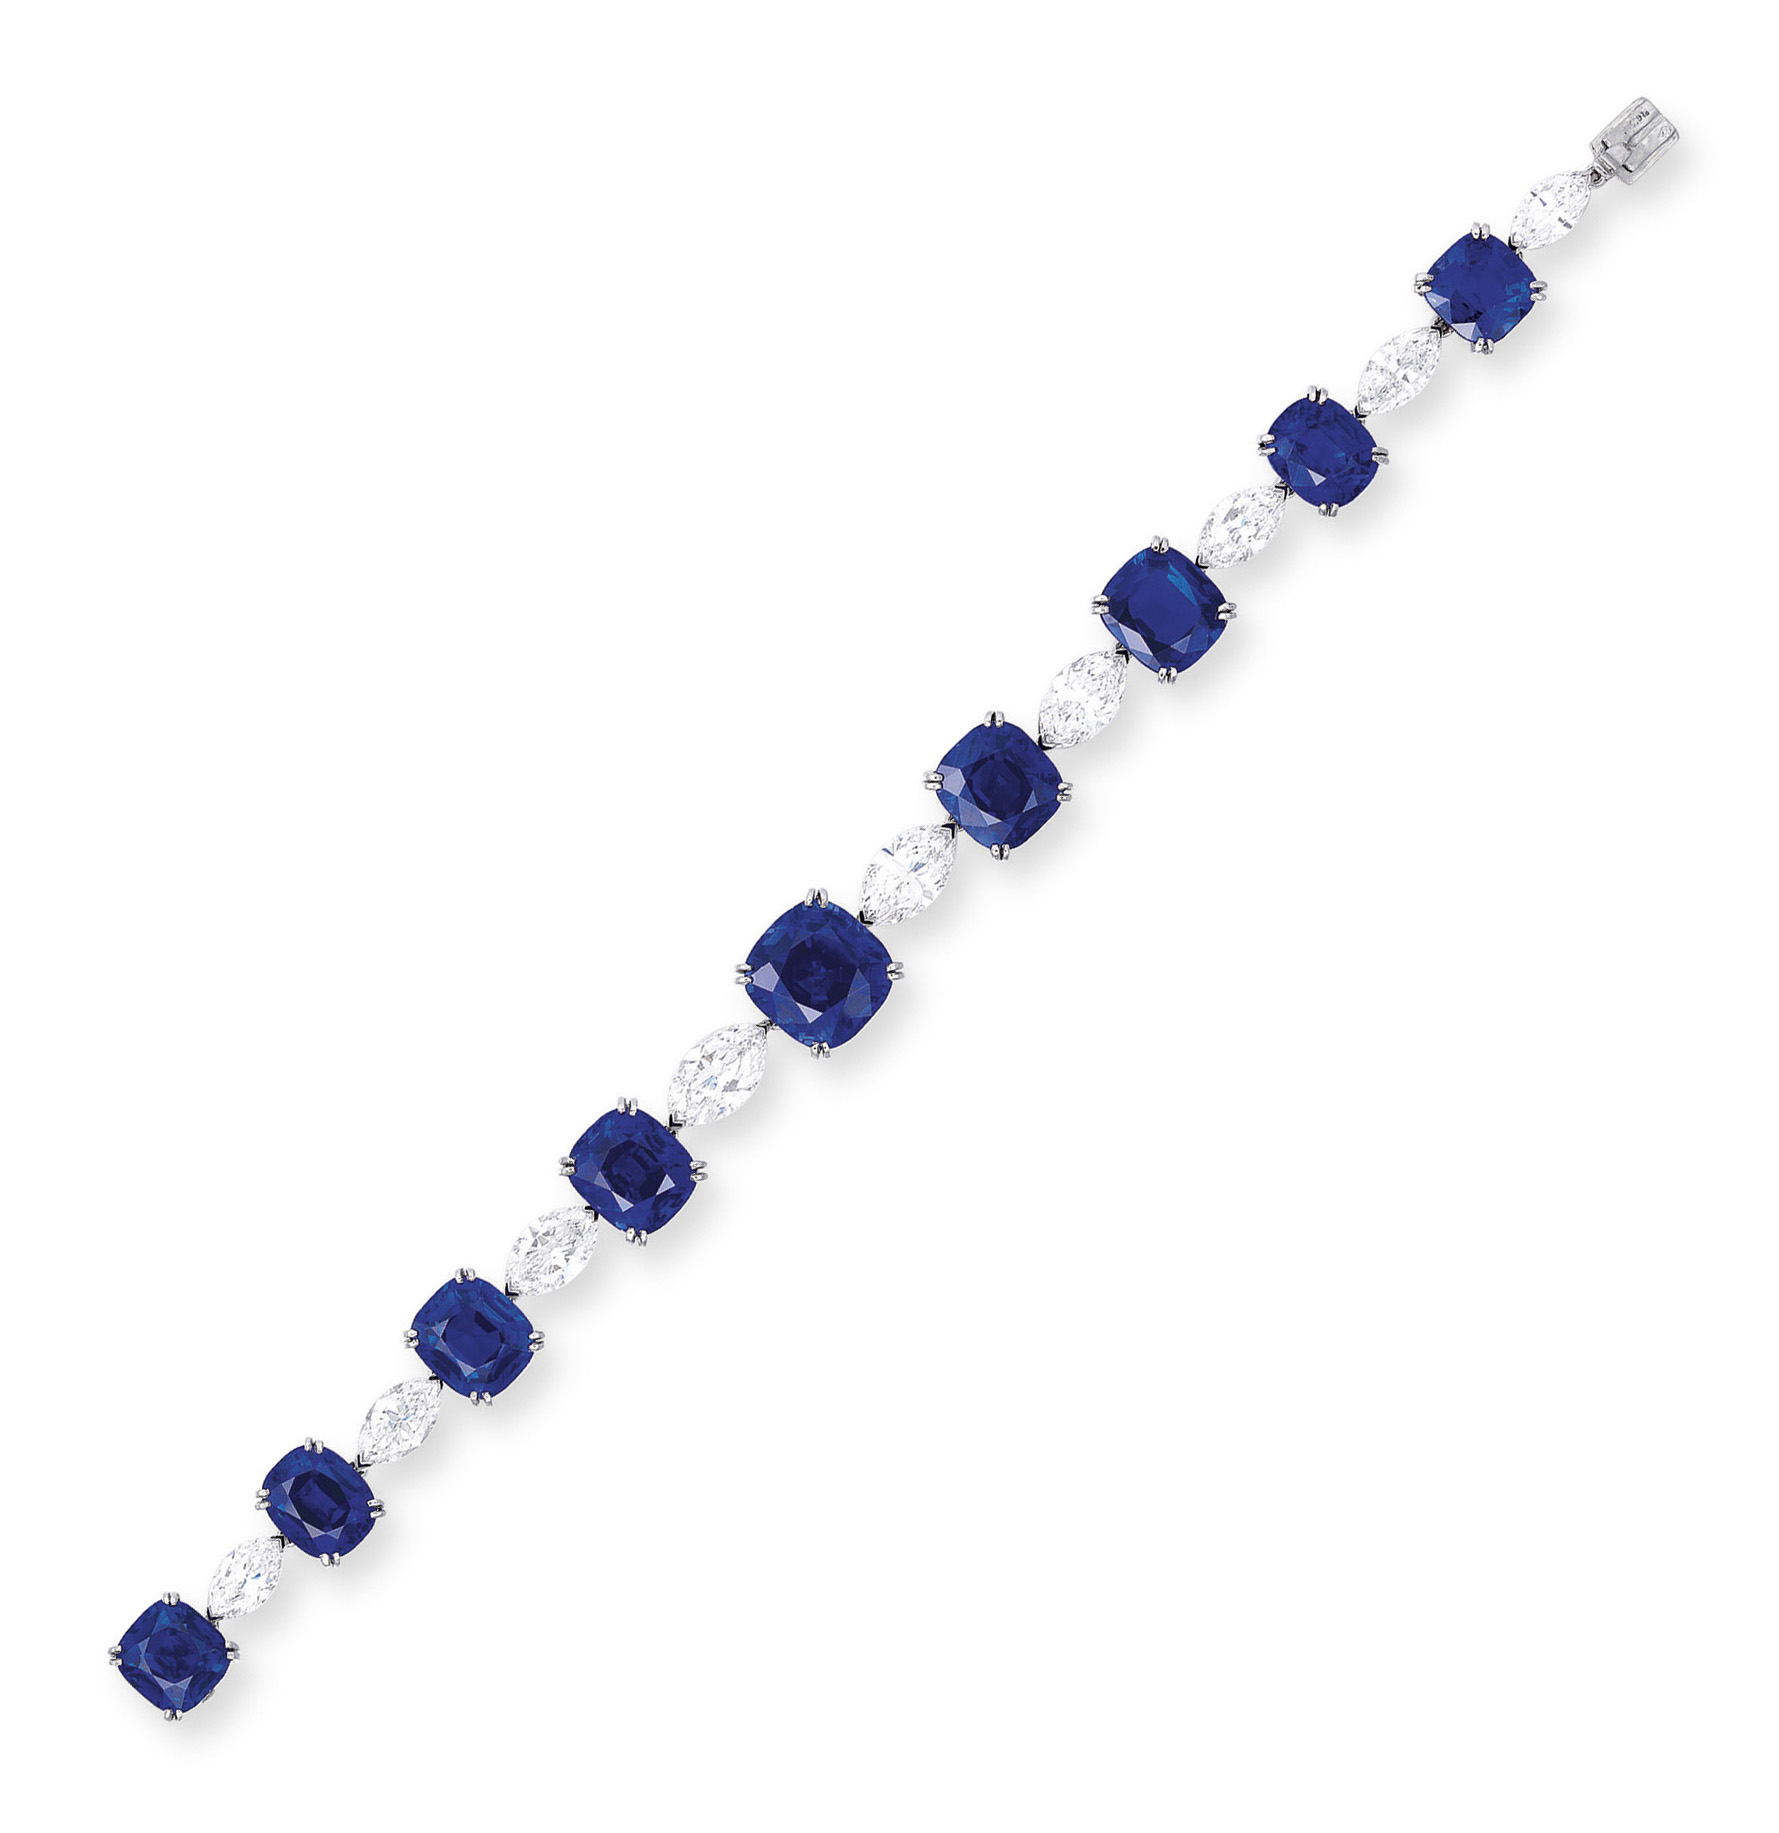 AN EXQUISITE SAPPHIRE AND DIAMOND BRACELET, BY CARTIER